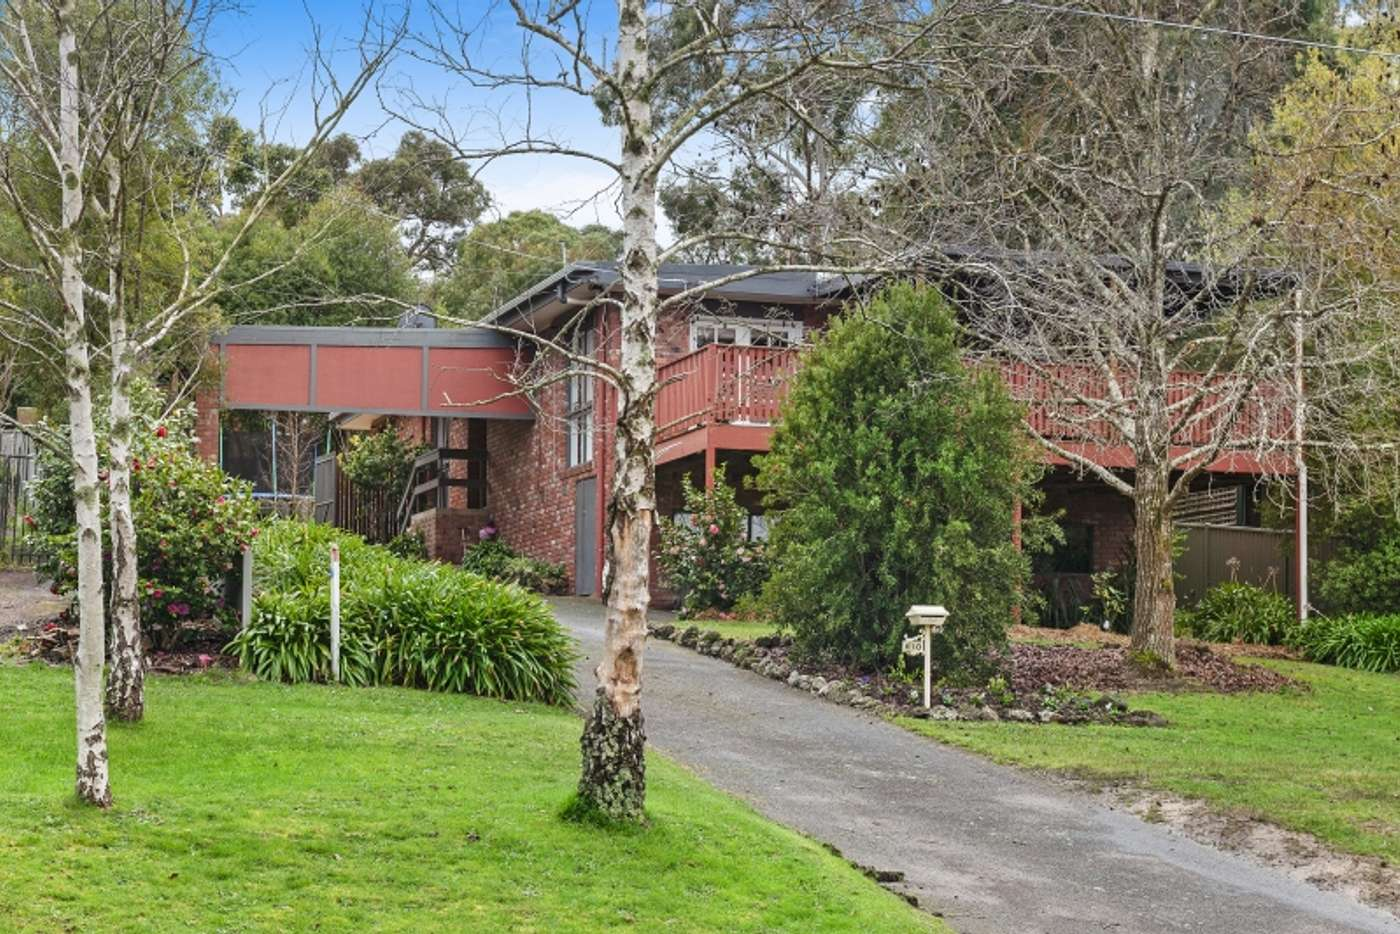 Main view of Homely house listing, 610 Barkly, Buninyong VIC 3357